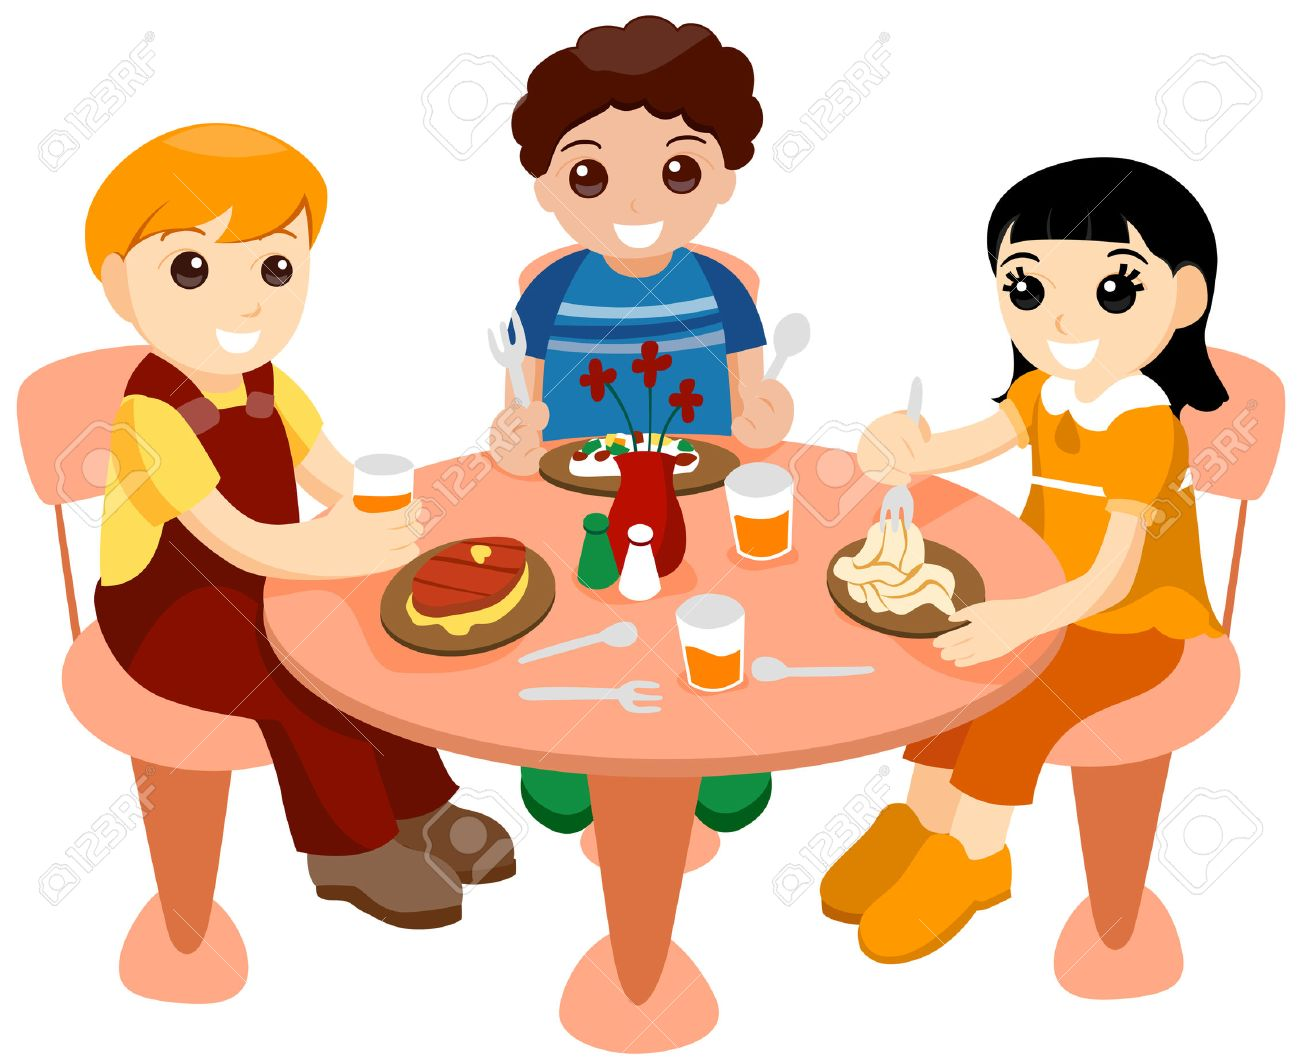 Children Dining Out with Clipping Path.